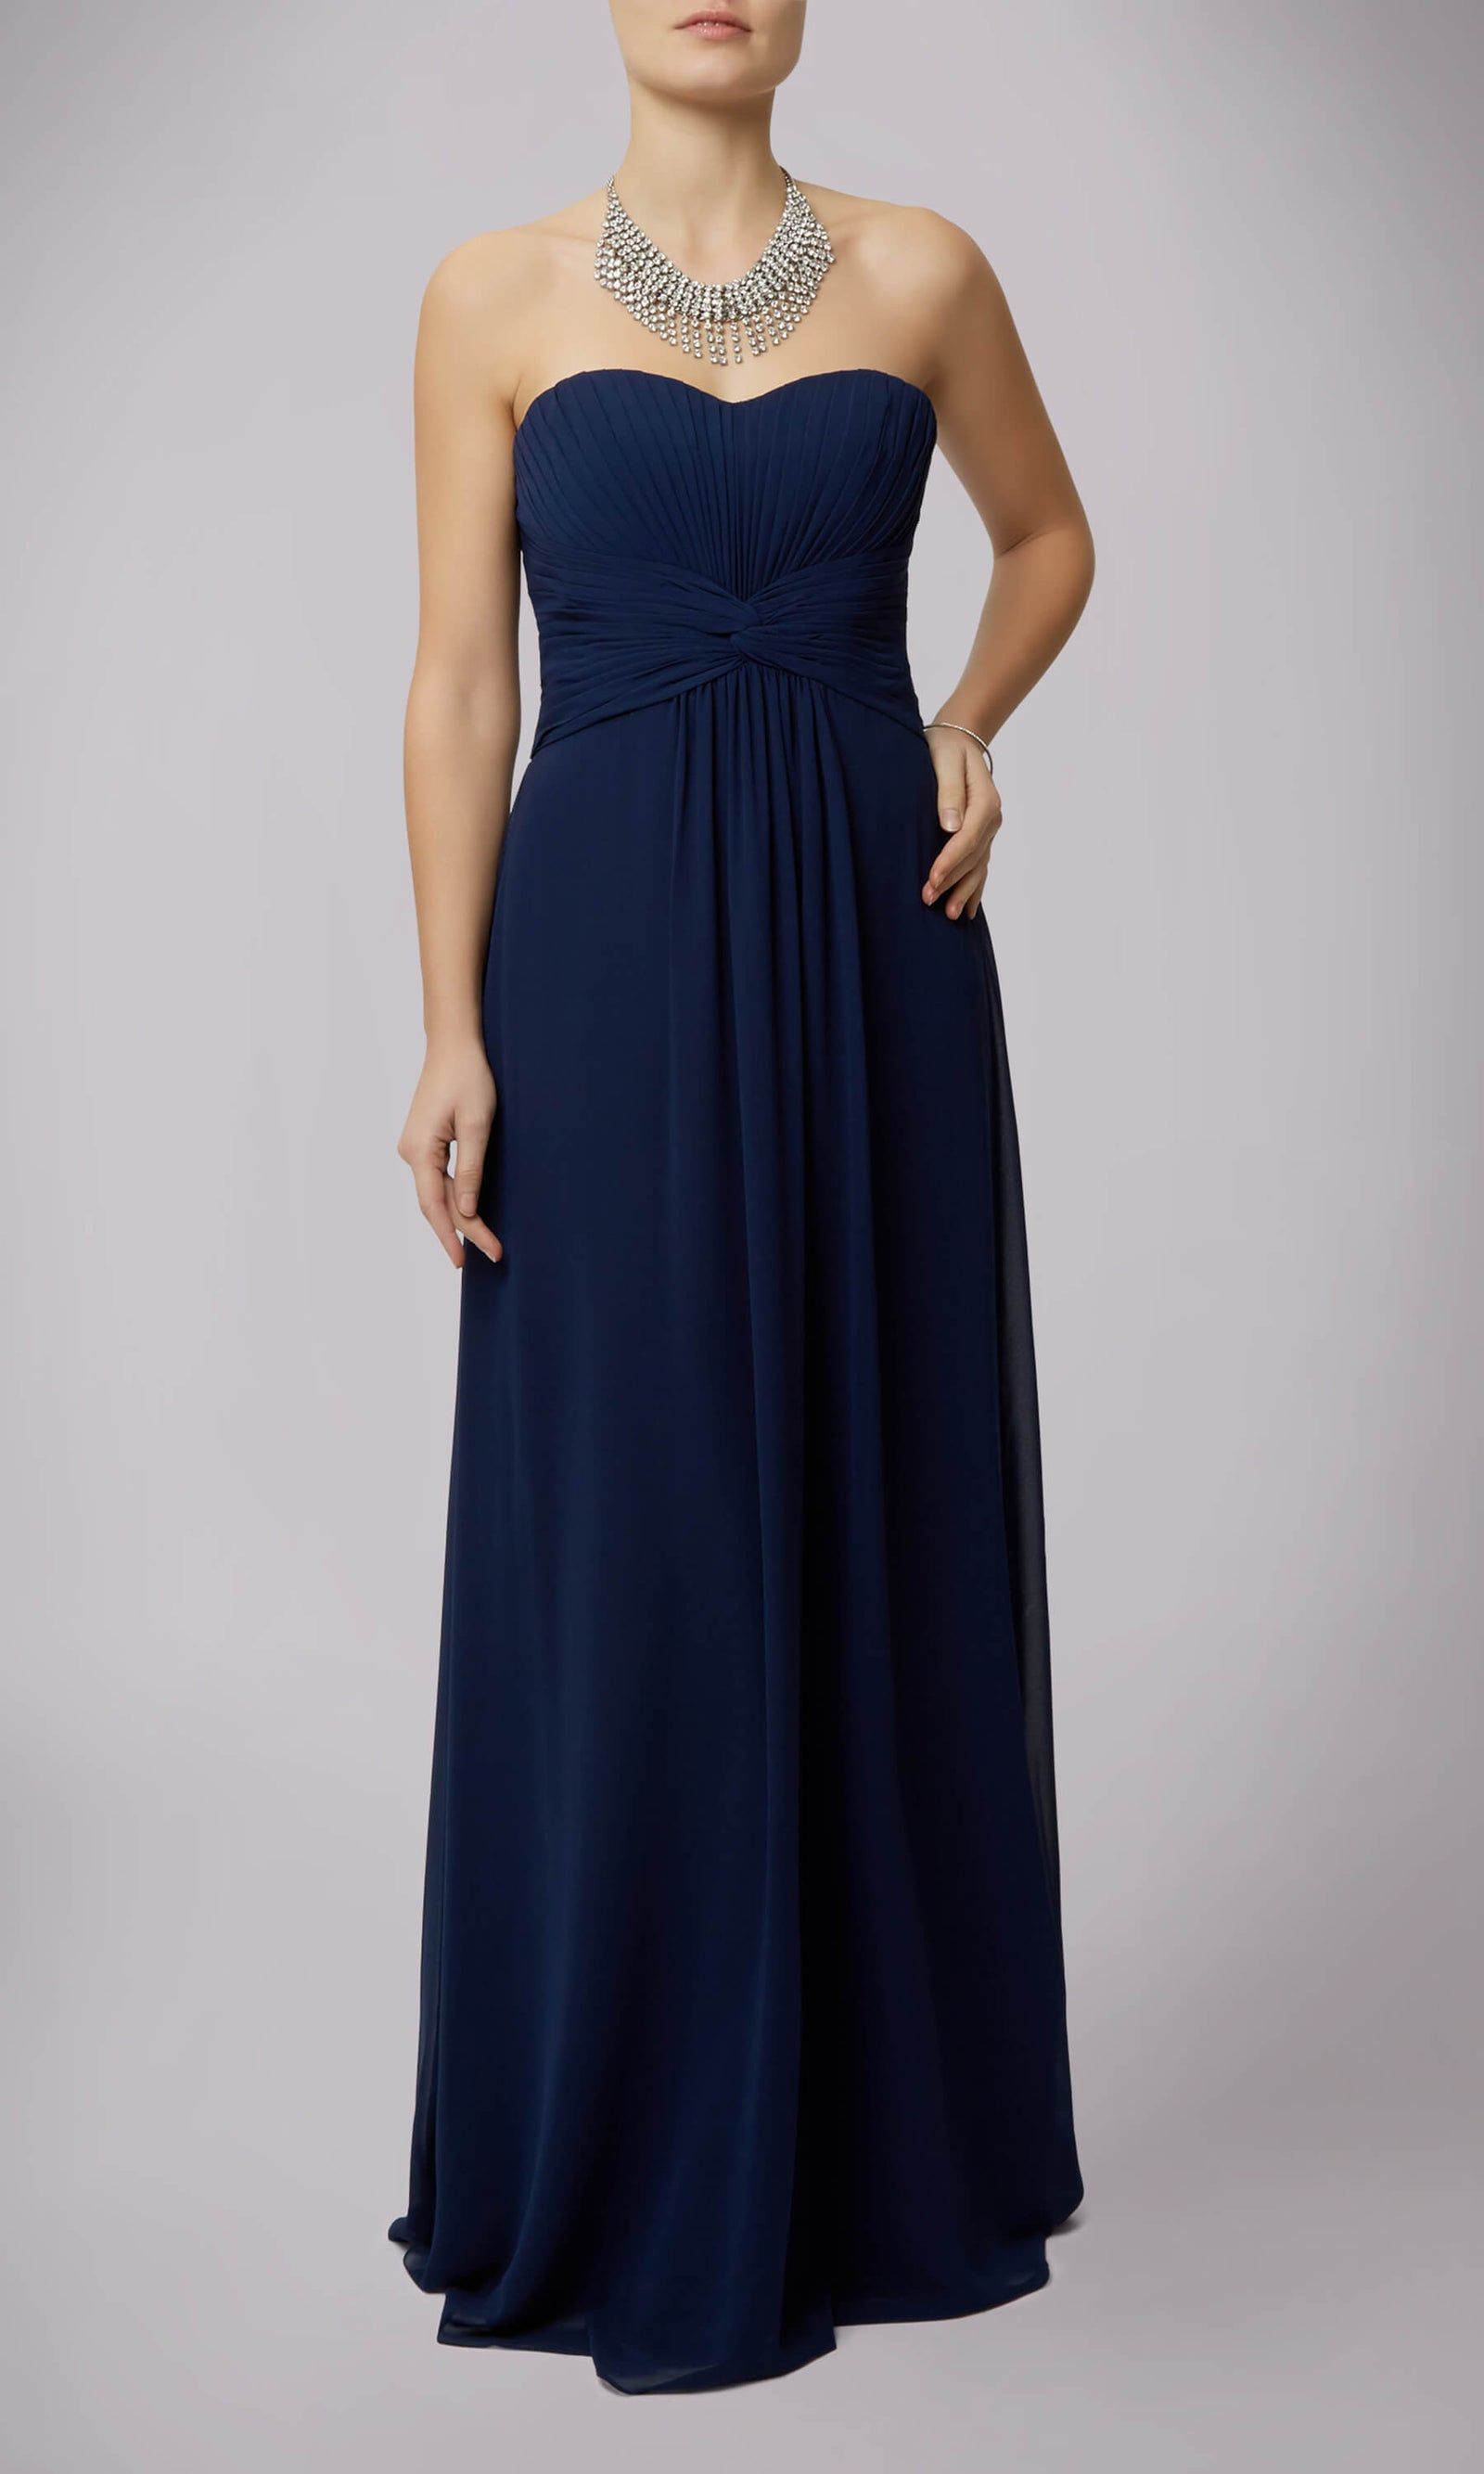 MC181090G Navy Mascara Dress With Sweetheart Neckline